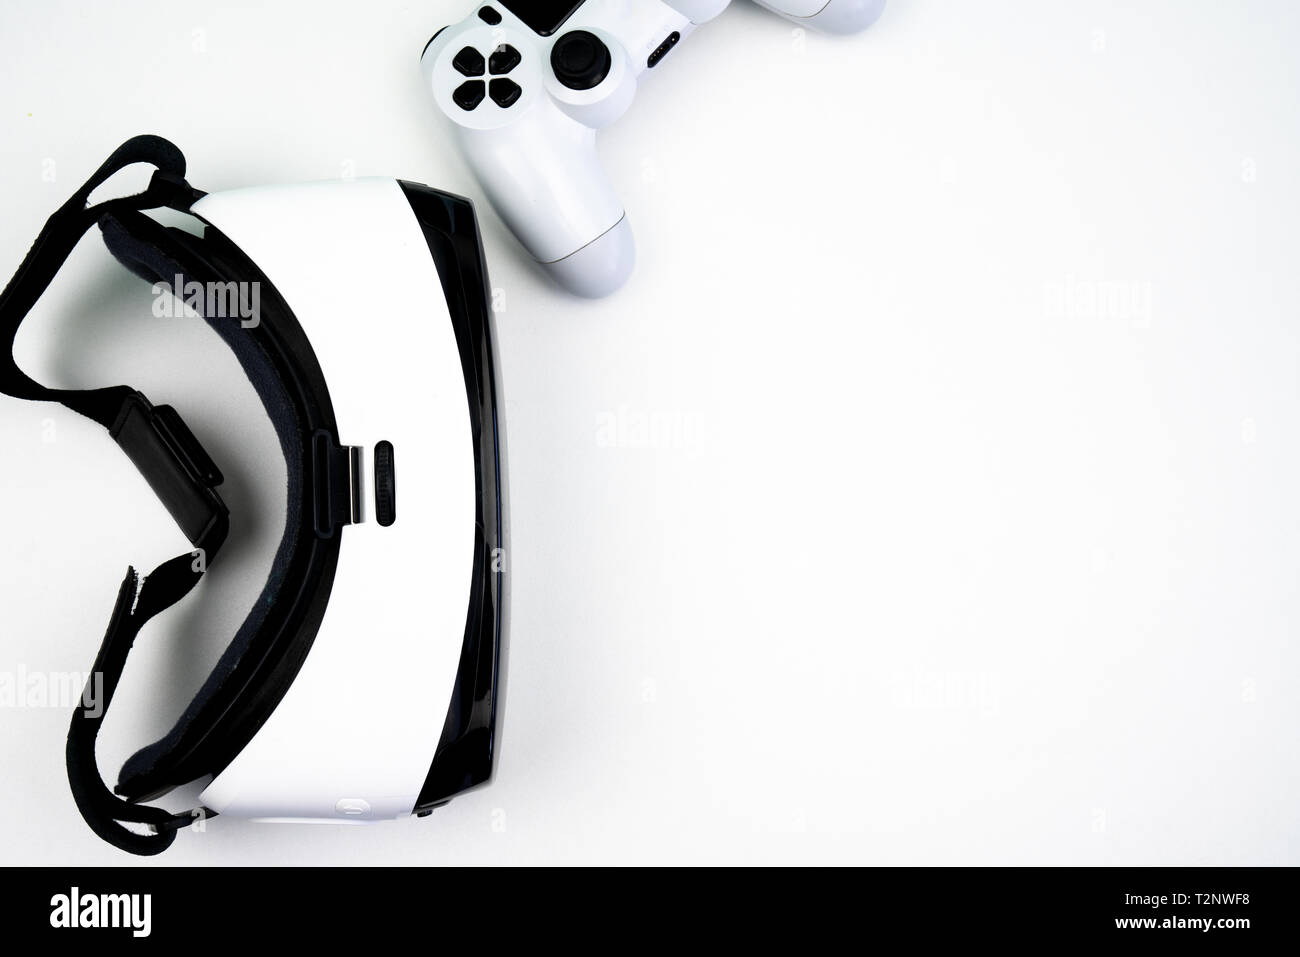 Top view of a virtual reality headset with a game controller on a white background. Having fun playing with it - Stock Image